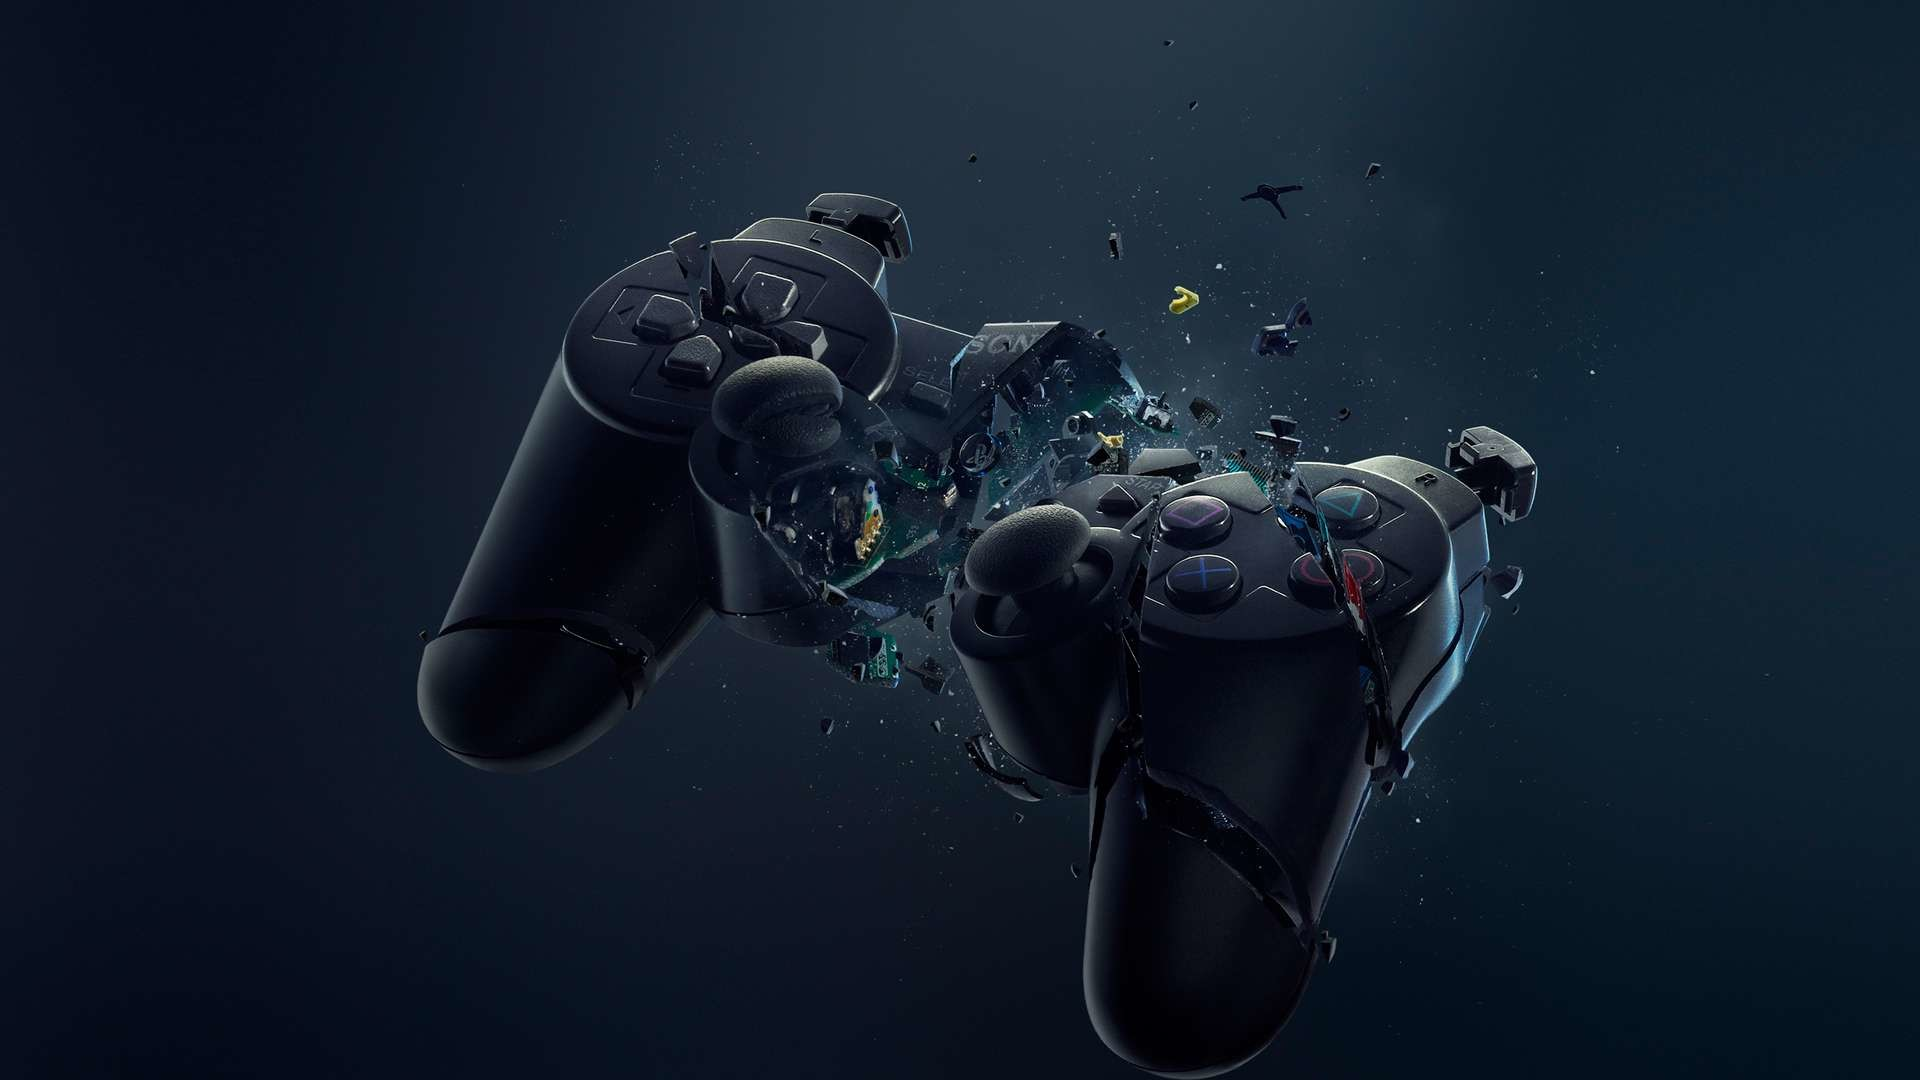 ps3 controller on pc no motioninjoy